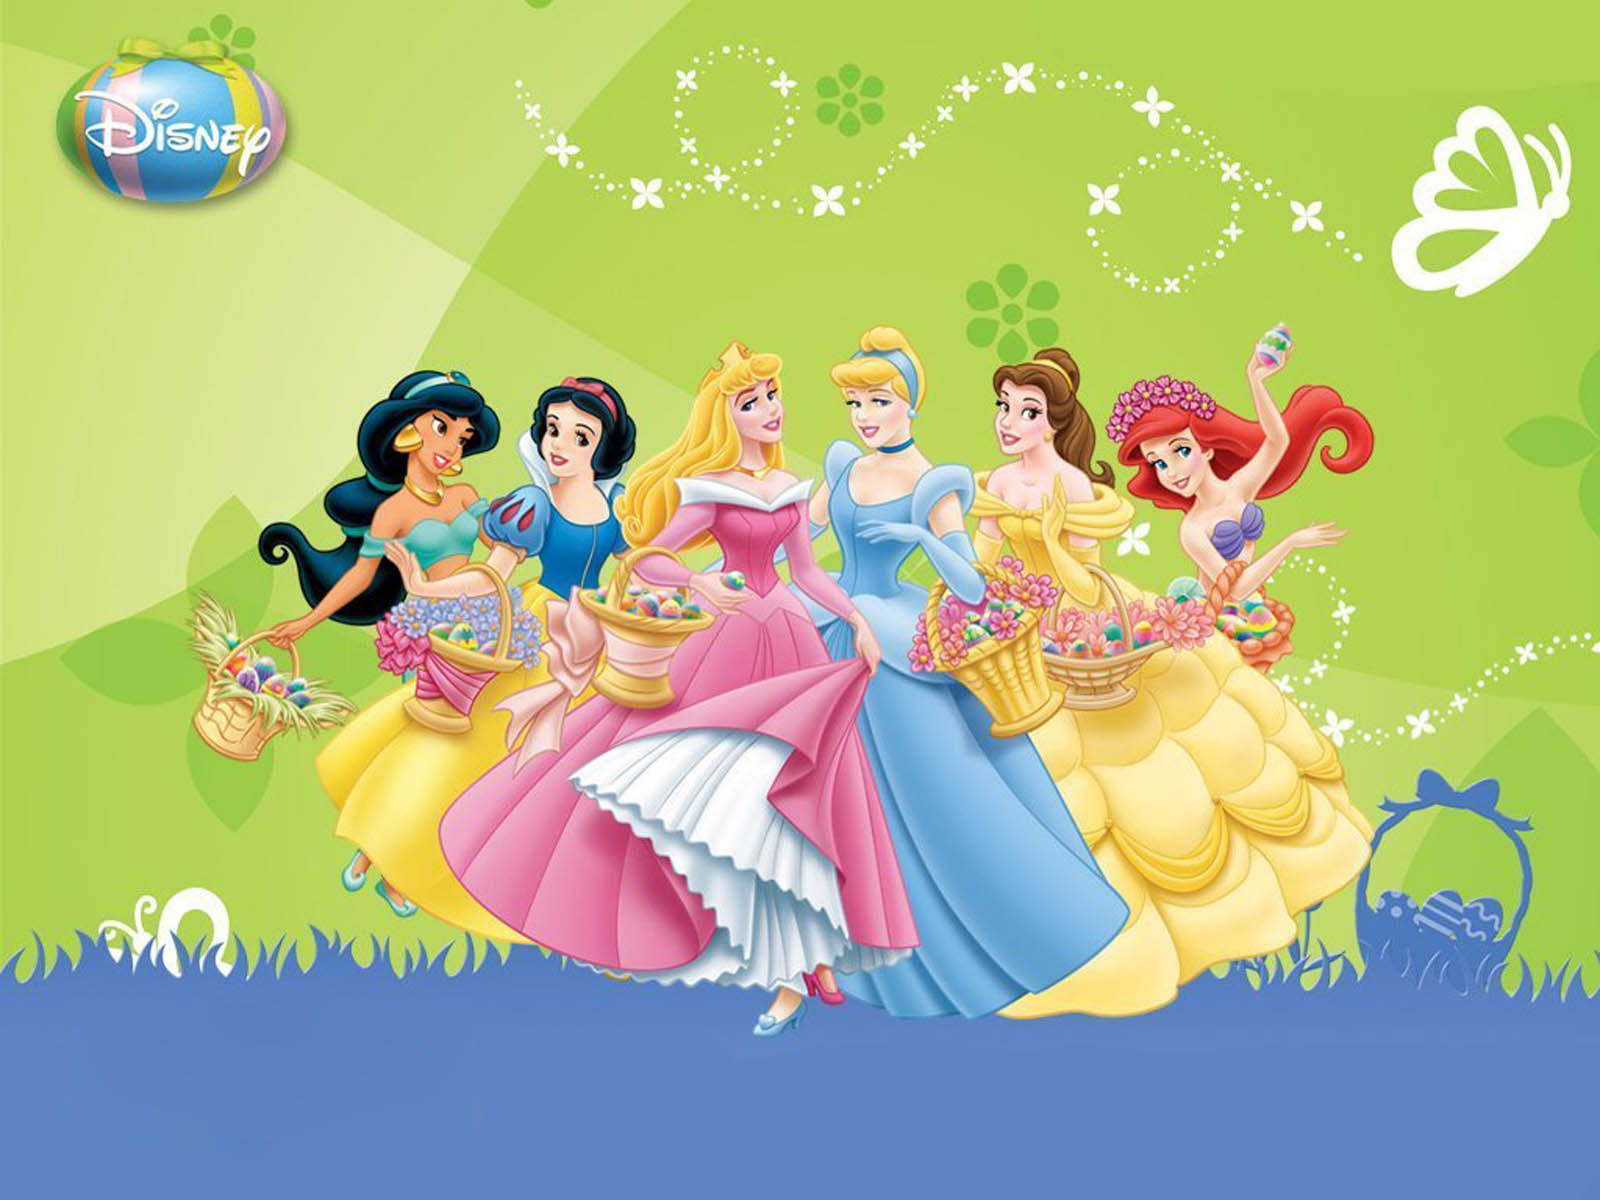 Disney Princess Quotes Wallpaper QuotesGram